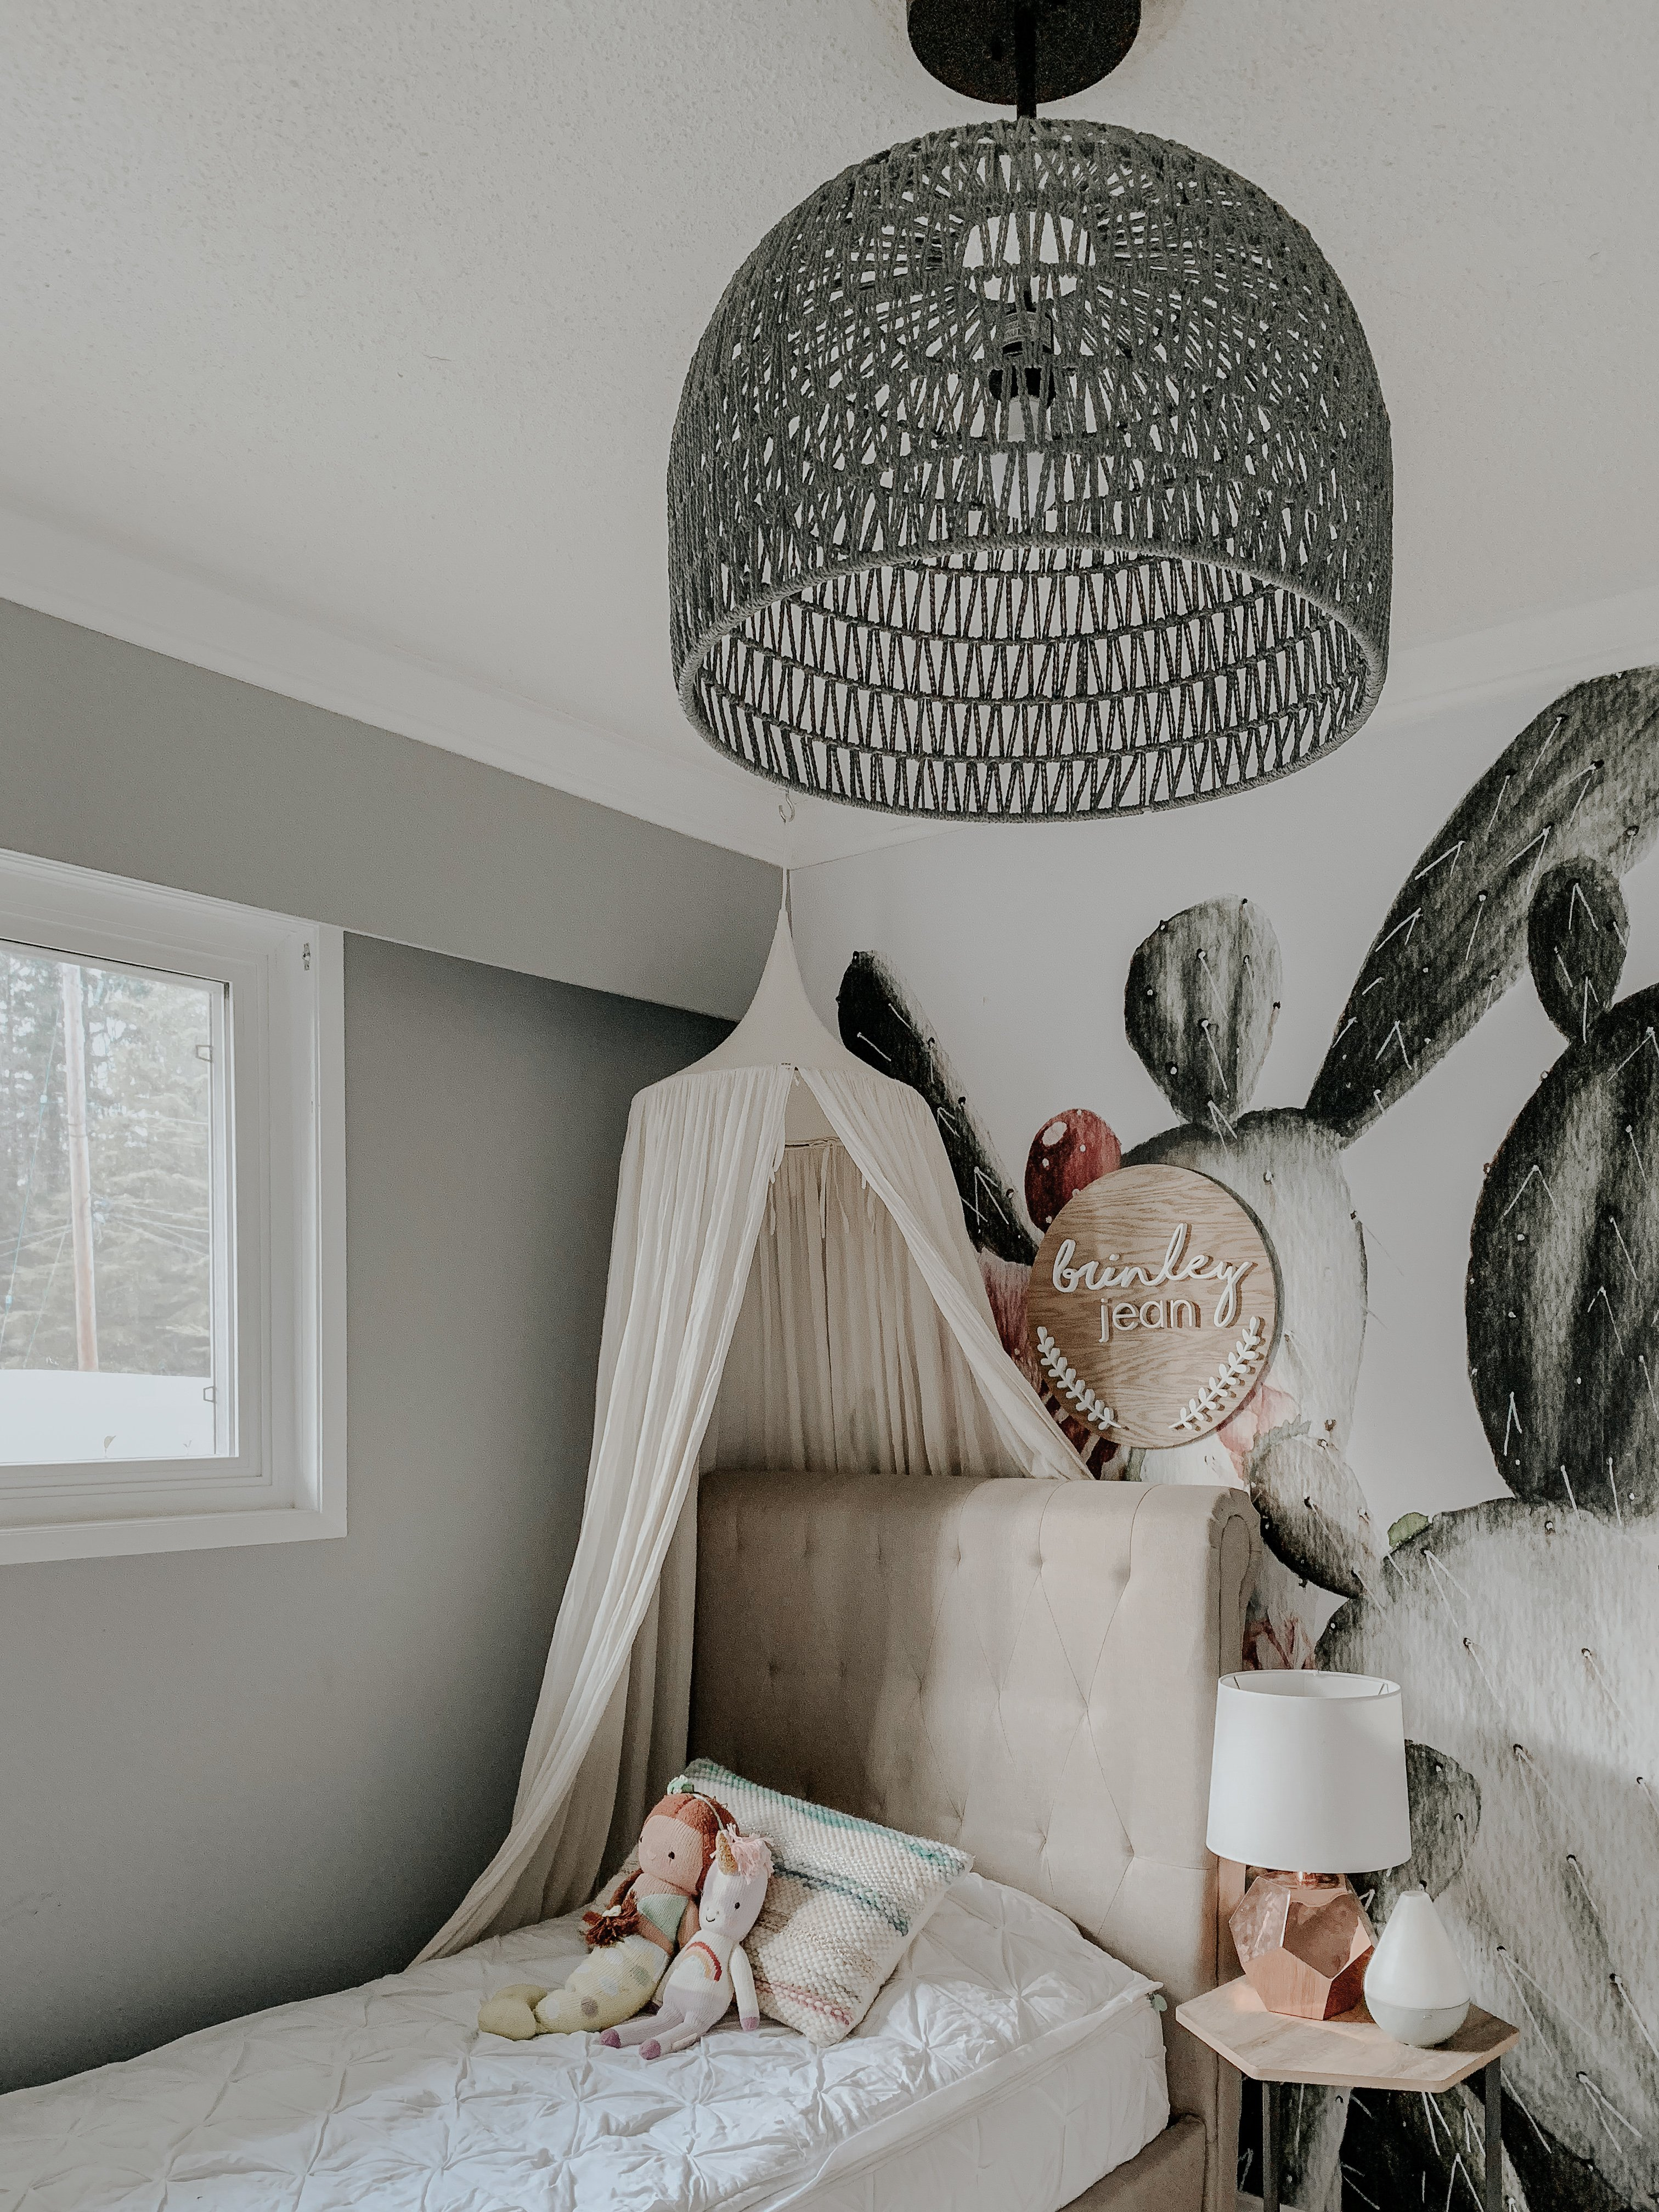 Brinley and Rhett's Space. See My Kiddos boho desert nursery. Completed with a Cactus wallpaper and a lantern pendant light